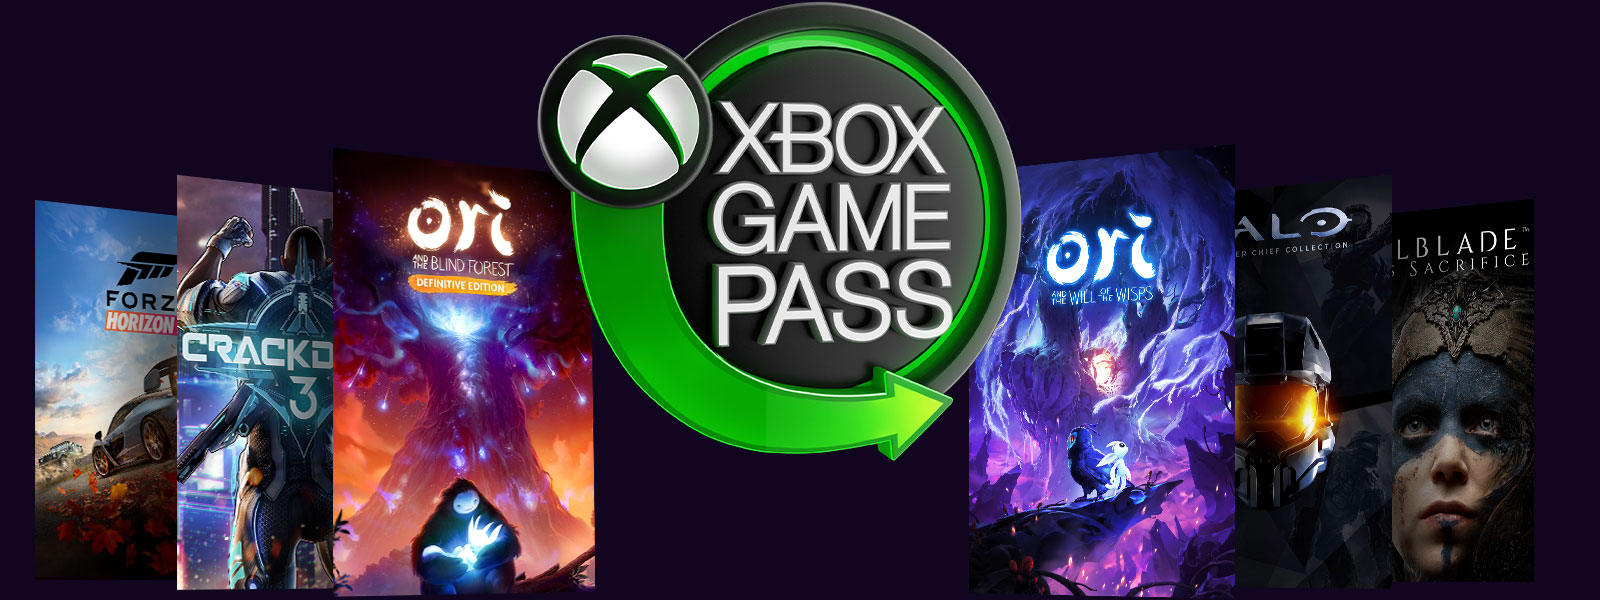 Logotipo do Xbox Game Pass com imagem do produto Ori and the Will of the Wisps, Ori and the Blind Forest, Crackdown 3, Halo, Forza Horizon 4 e Hellblade